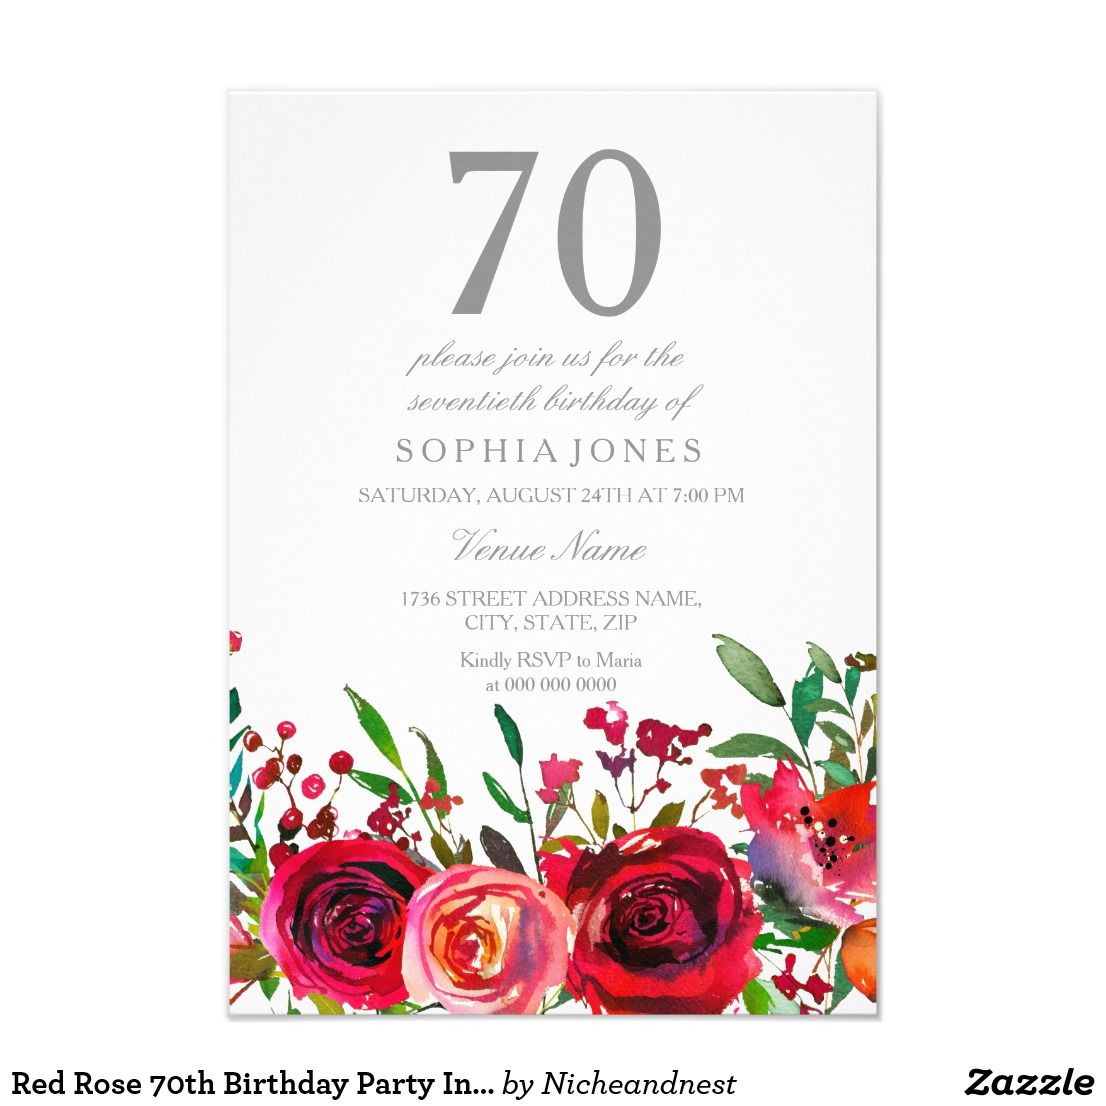 Red Rose 70th Birthday Party Invitation | 70 birthday parties, 70 ...